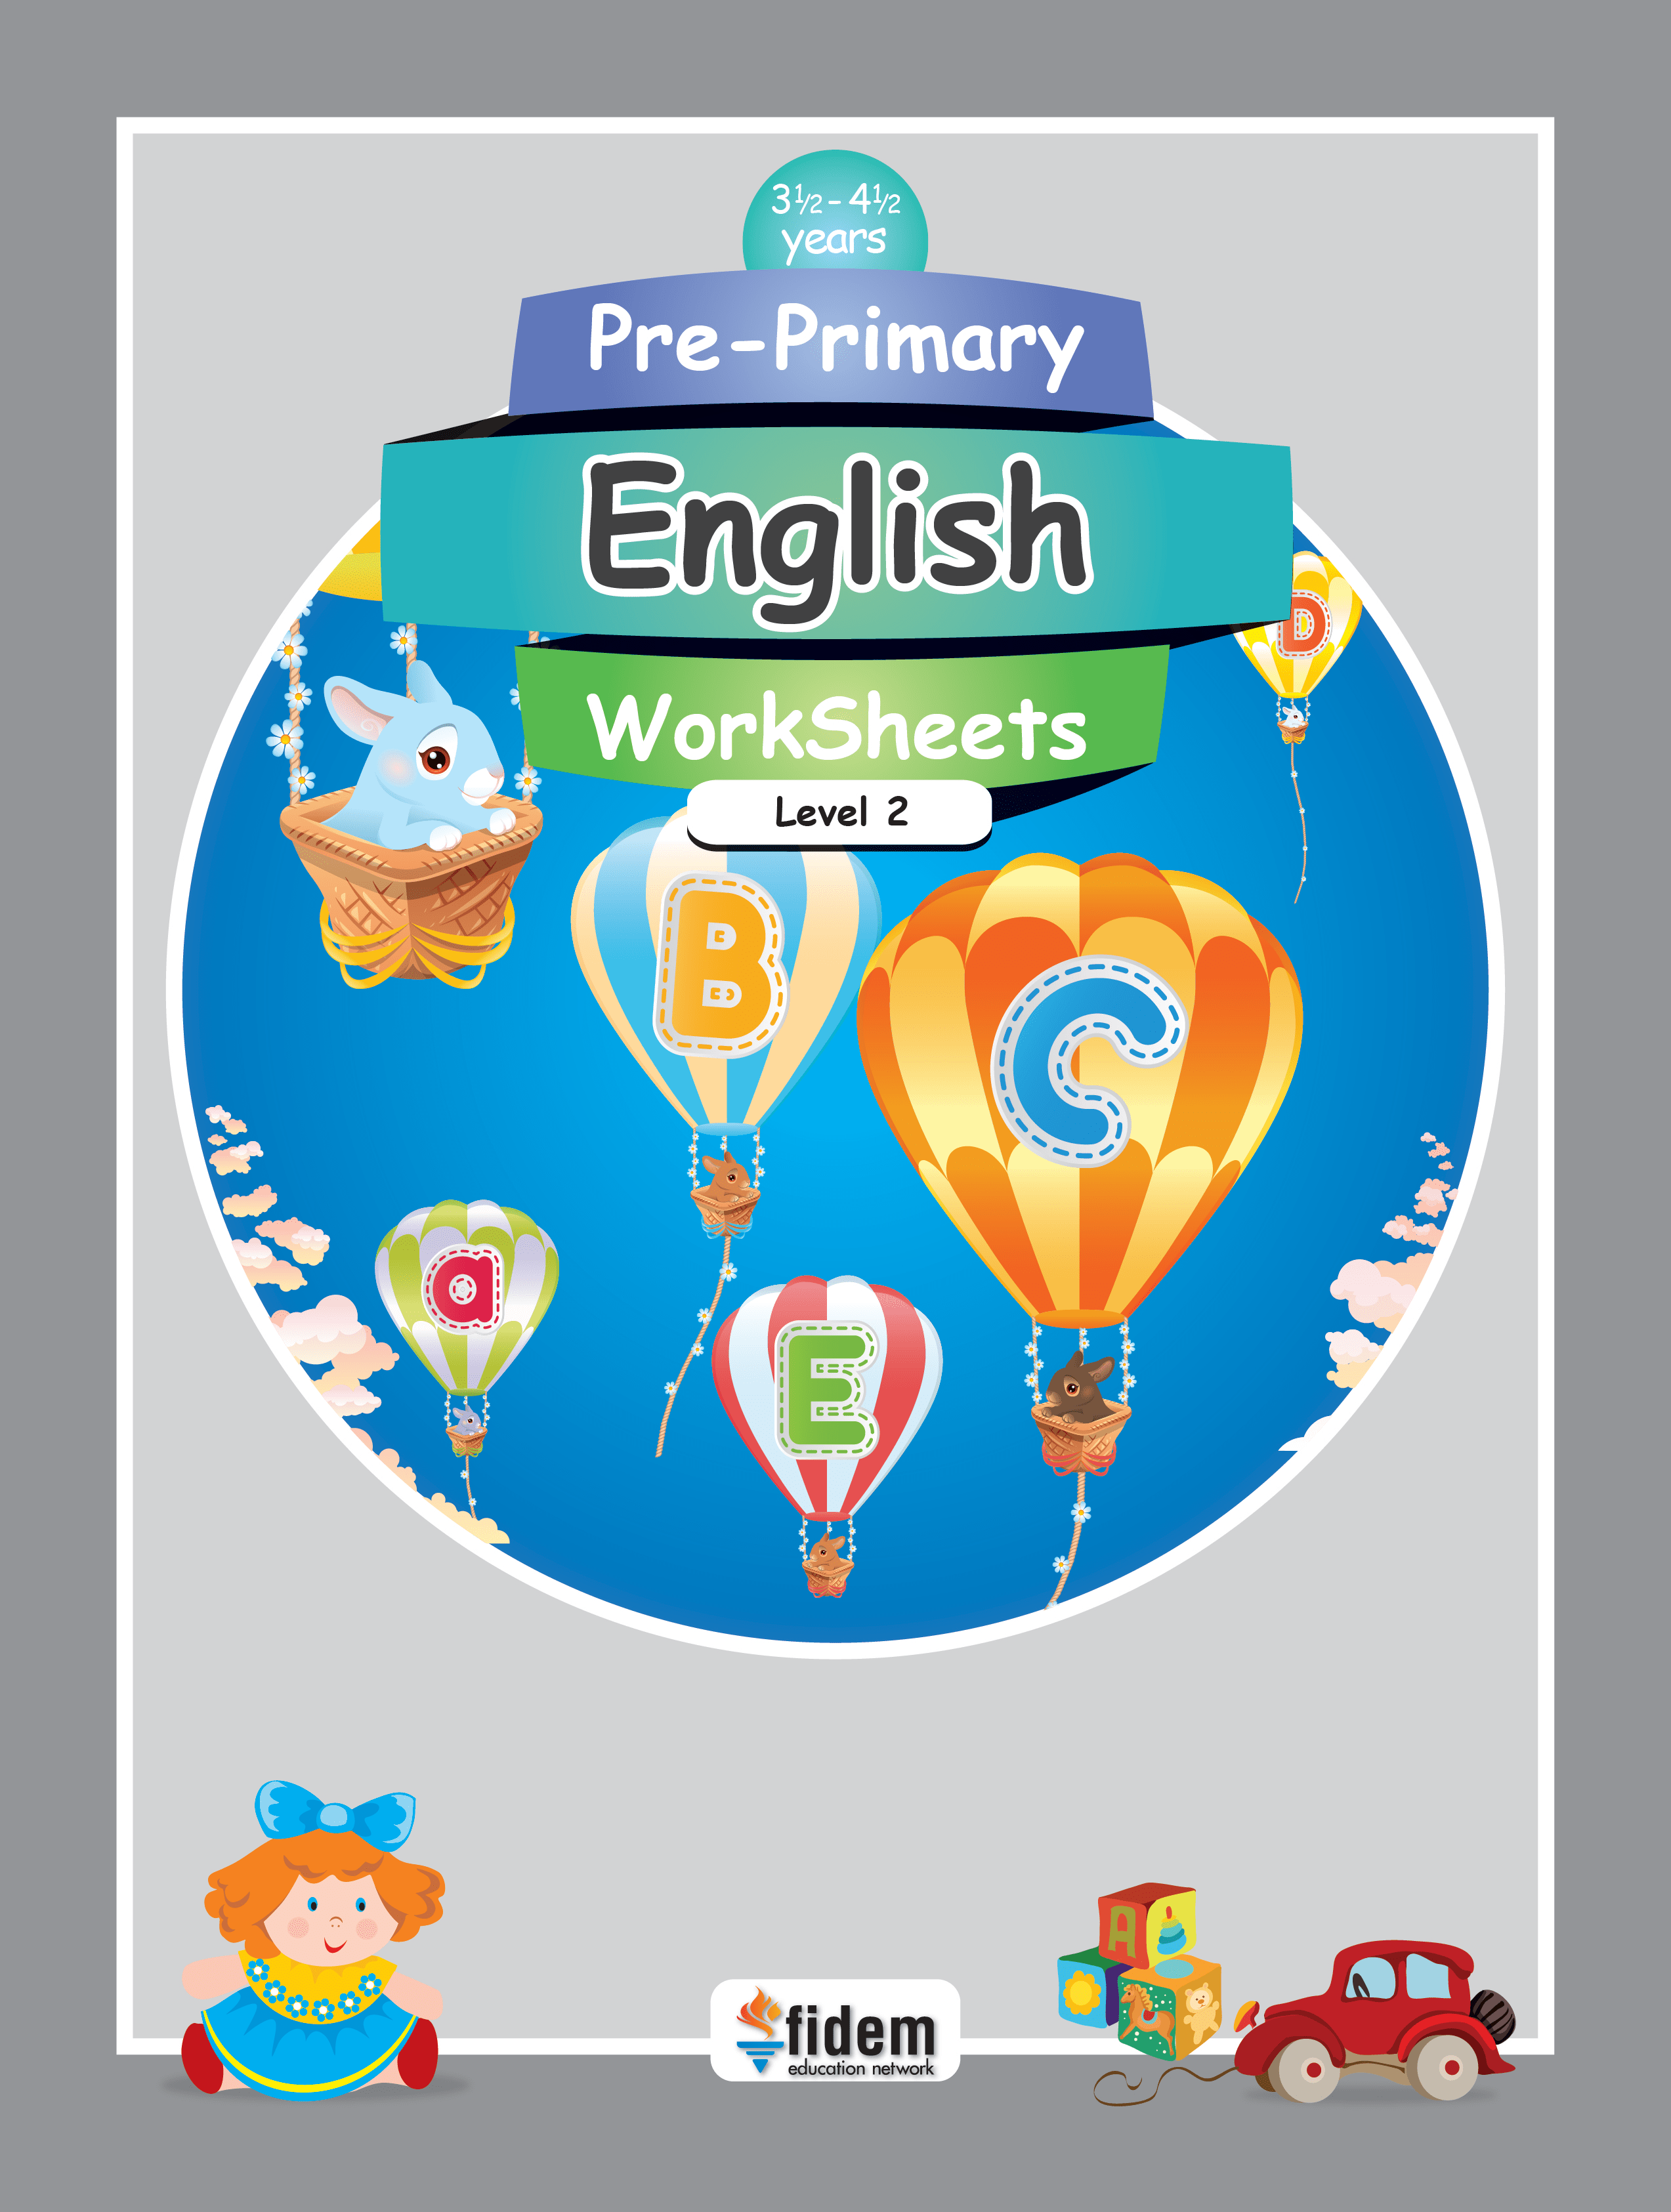 Pre Primary English Worksheets 2 Fidem Education Network